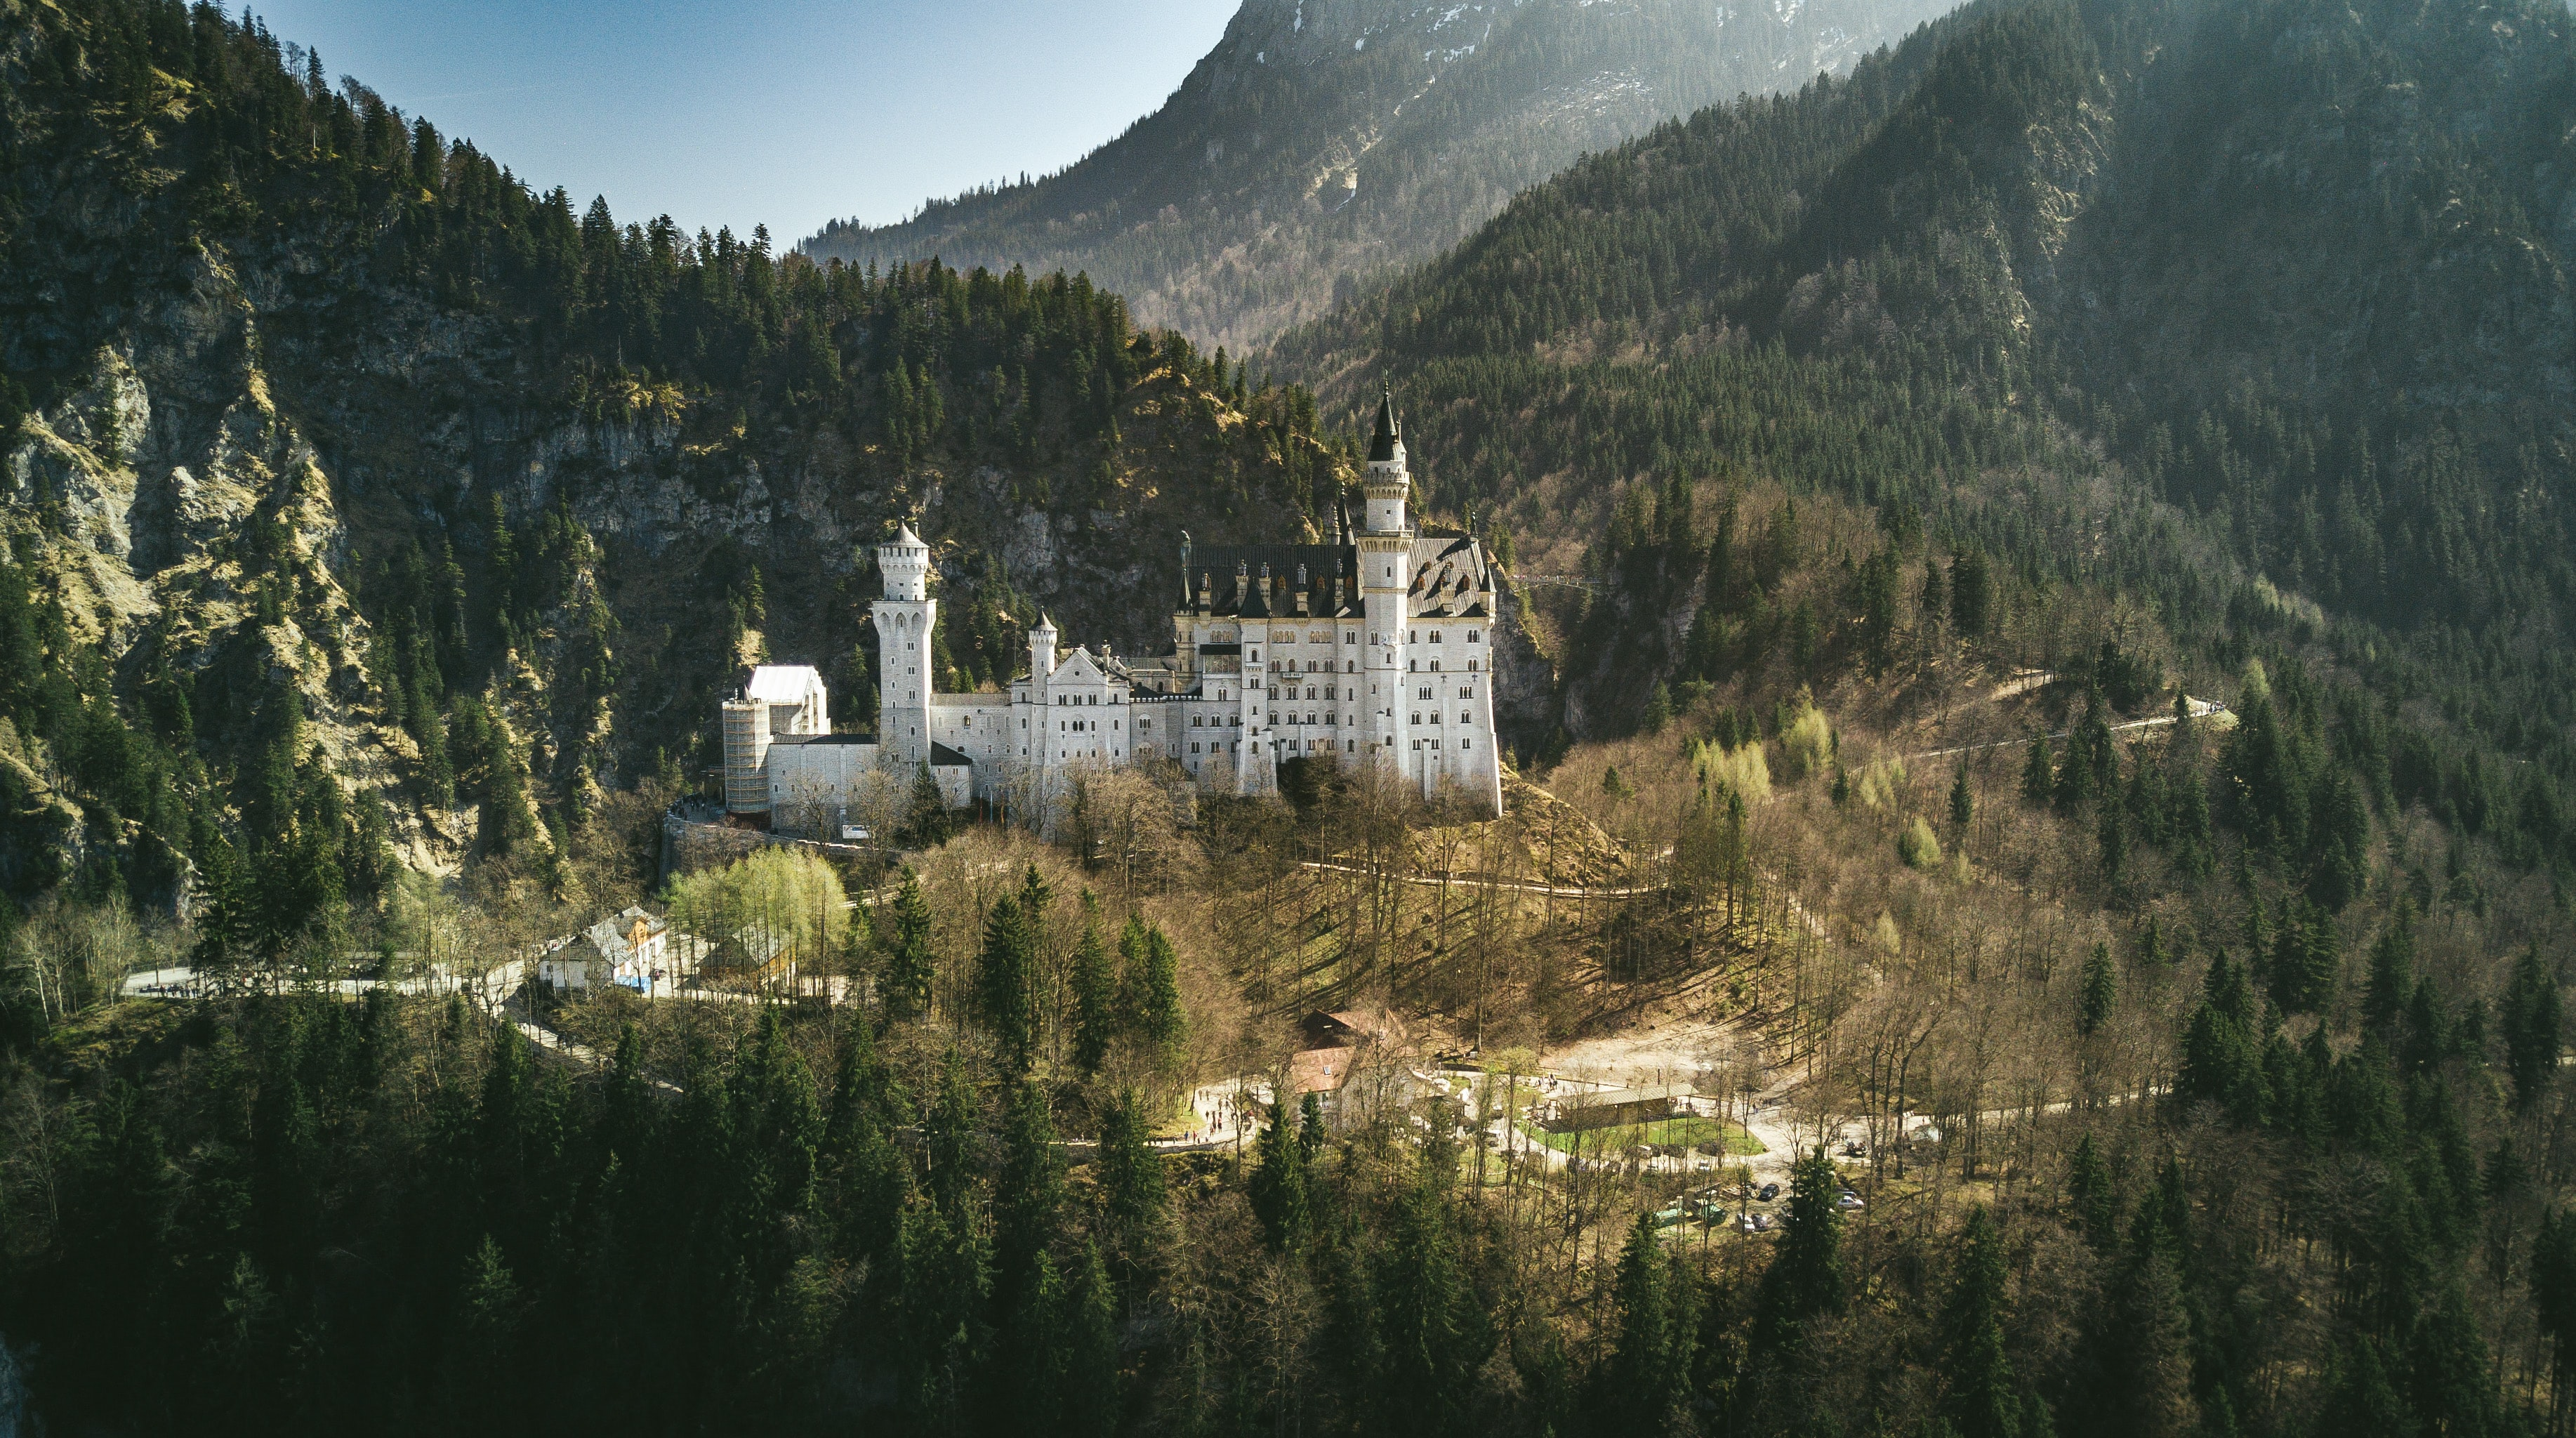 View of the magnificent Neuschwanstein Castle on a sunny day